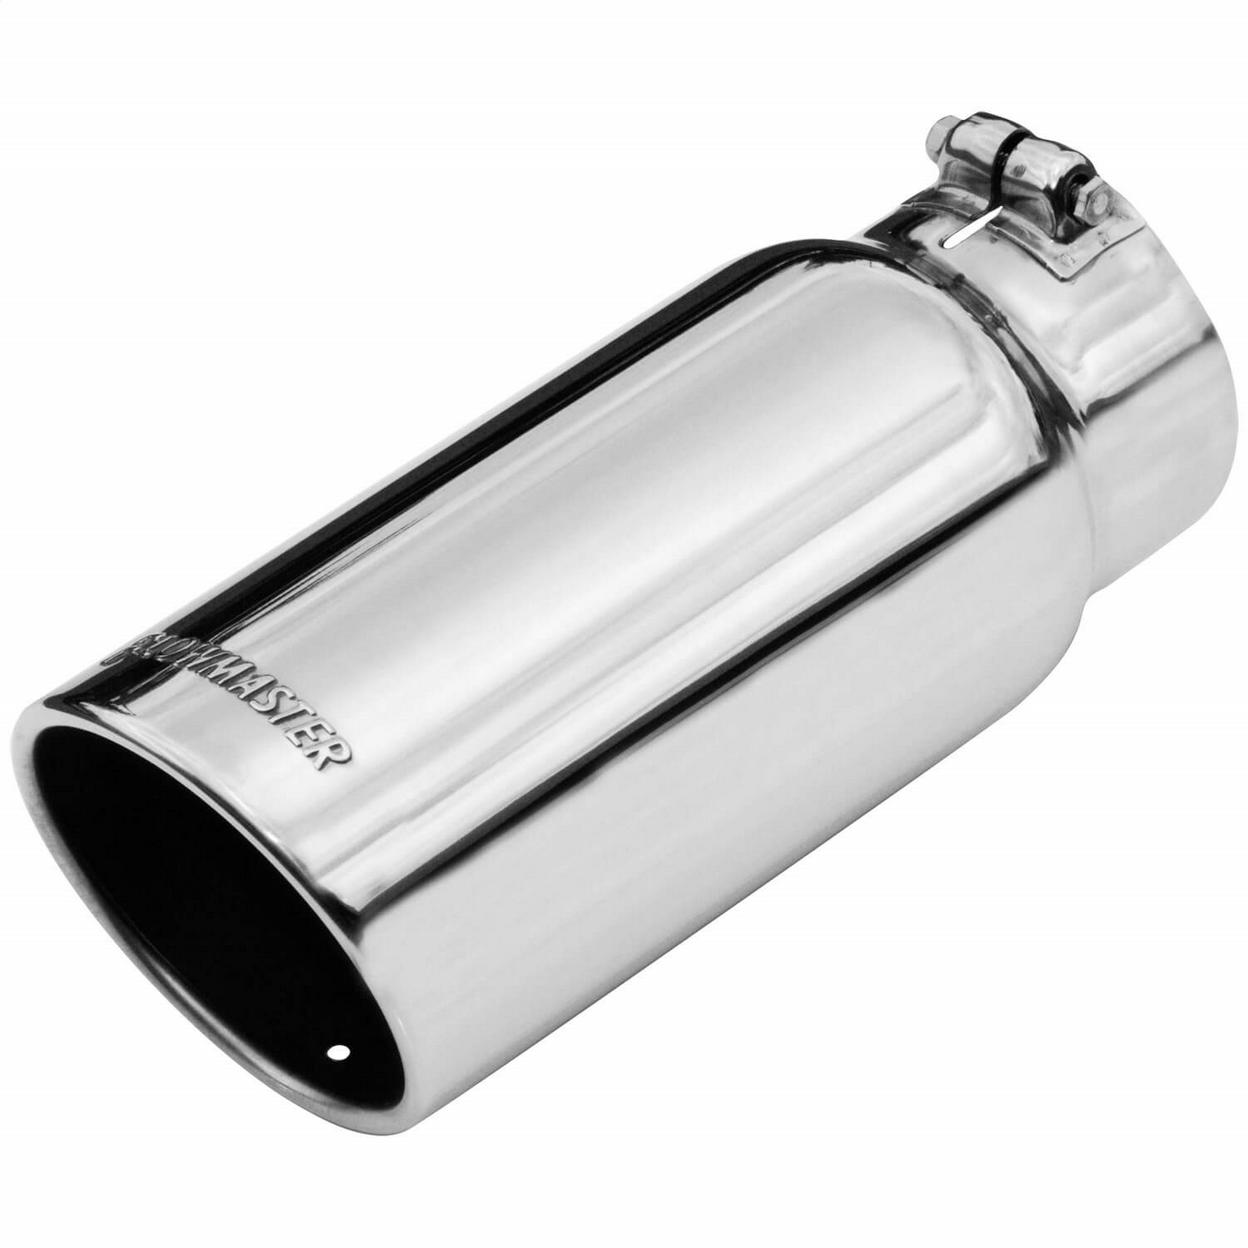 Exhaust Tip - 5.00 in. Rolled Angle Polished SS Fits 4.00 in. Tubing - Clamp On